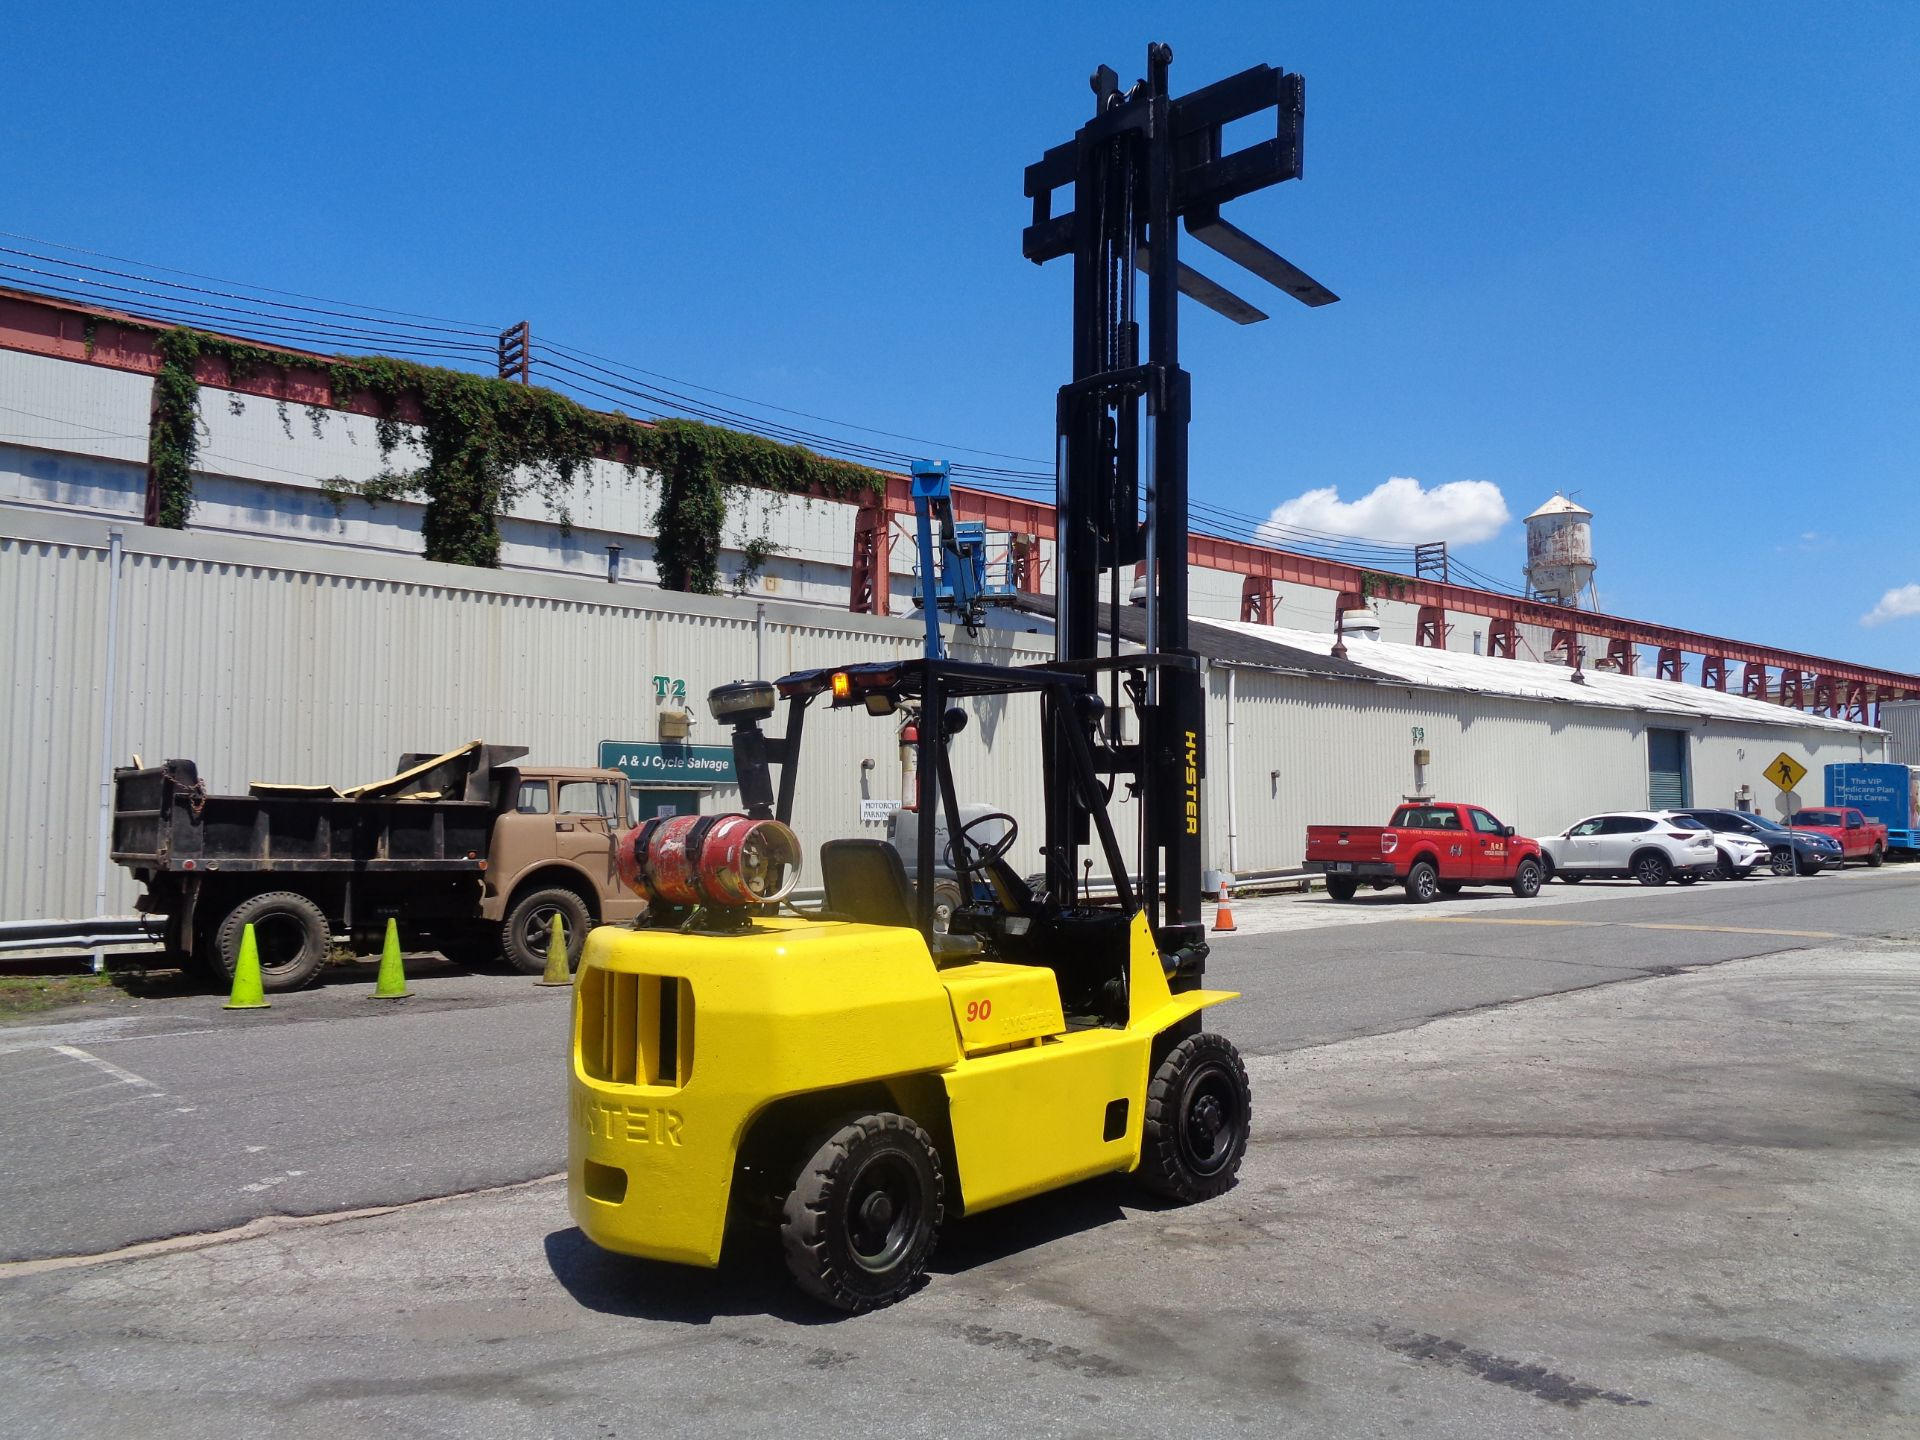 Hyster H90XLS Forklift 9,000 lbs - Image 13 of 13